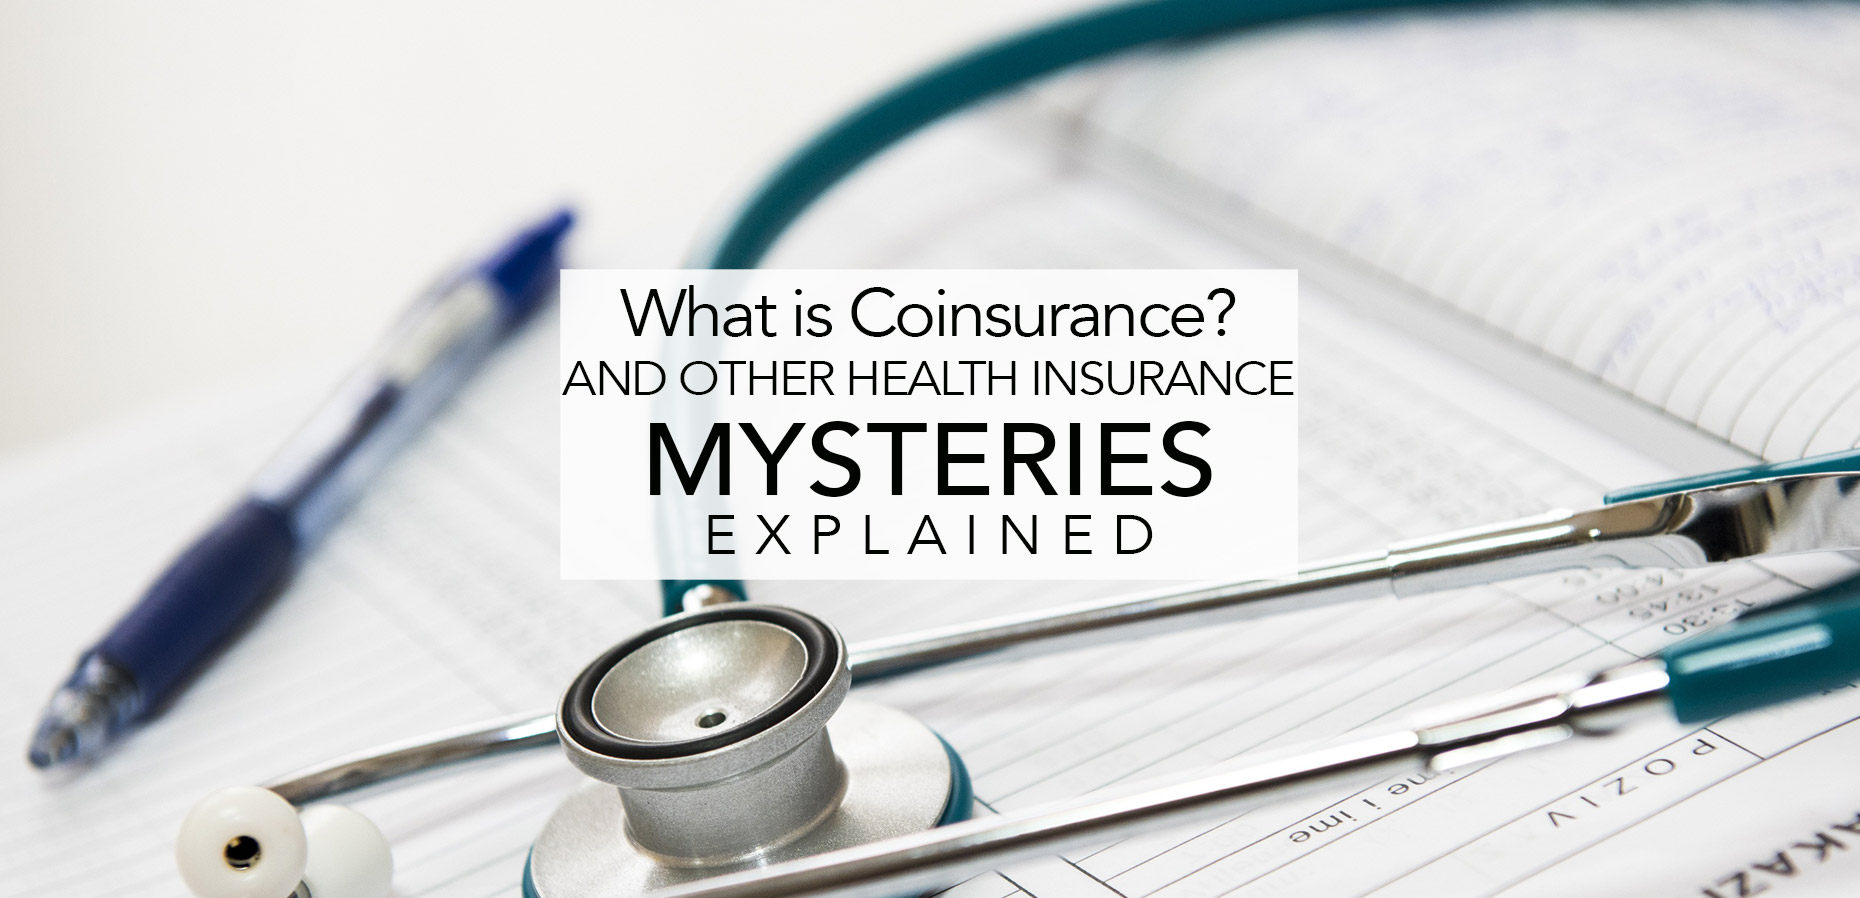 What is coinsurance? And other health insurance mysteries explained